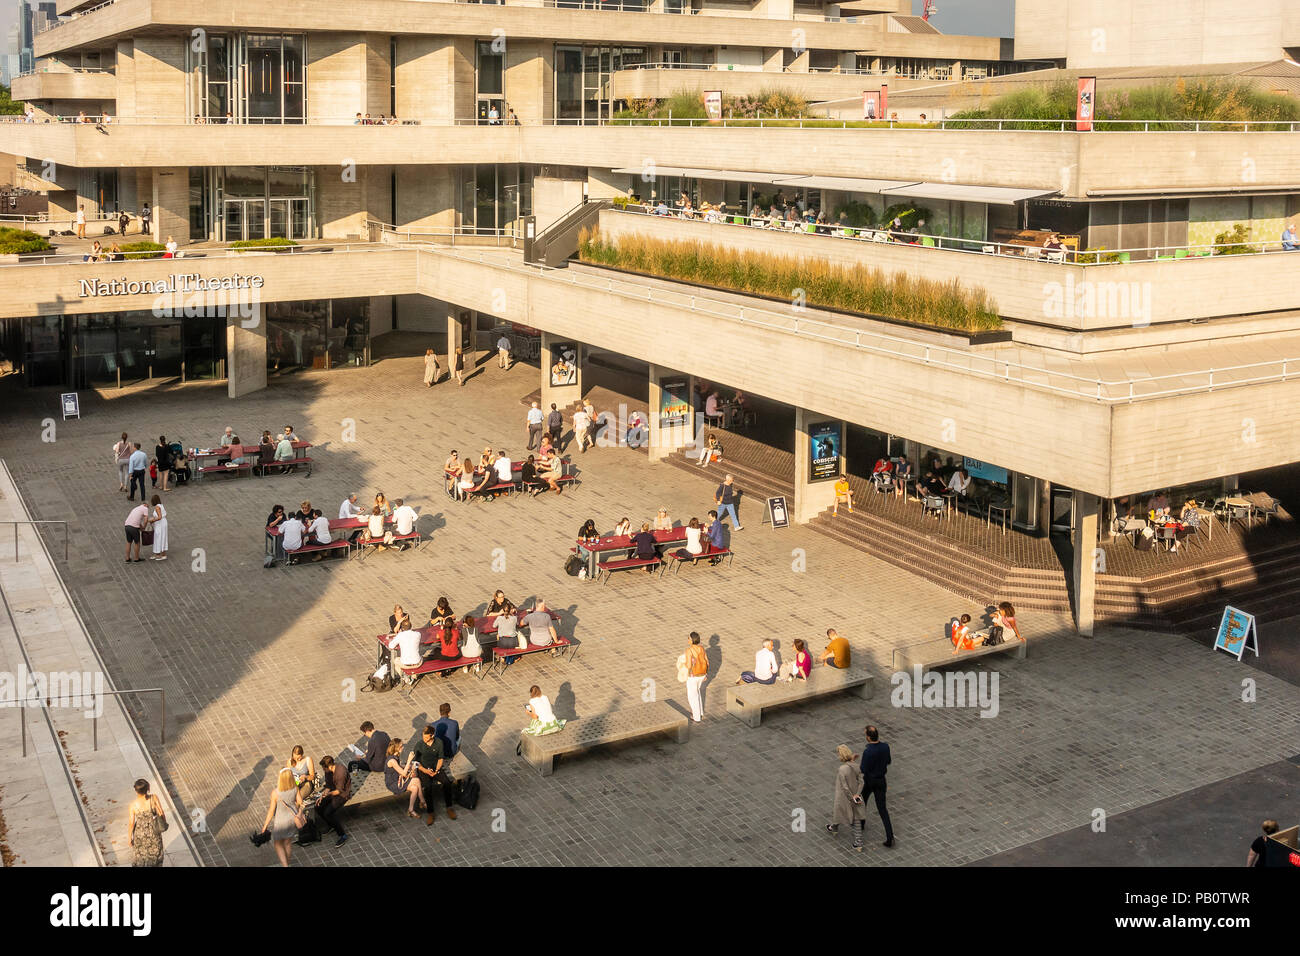 Tourists and locals enjoying a hot July evening outside the concrete Brutalist architecture of the National Theatre in London, UK - Stock Image